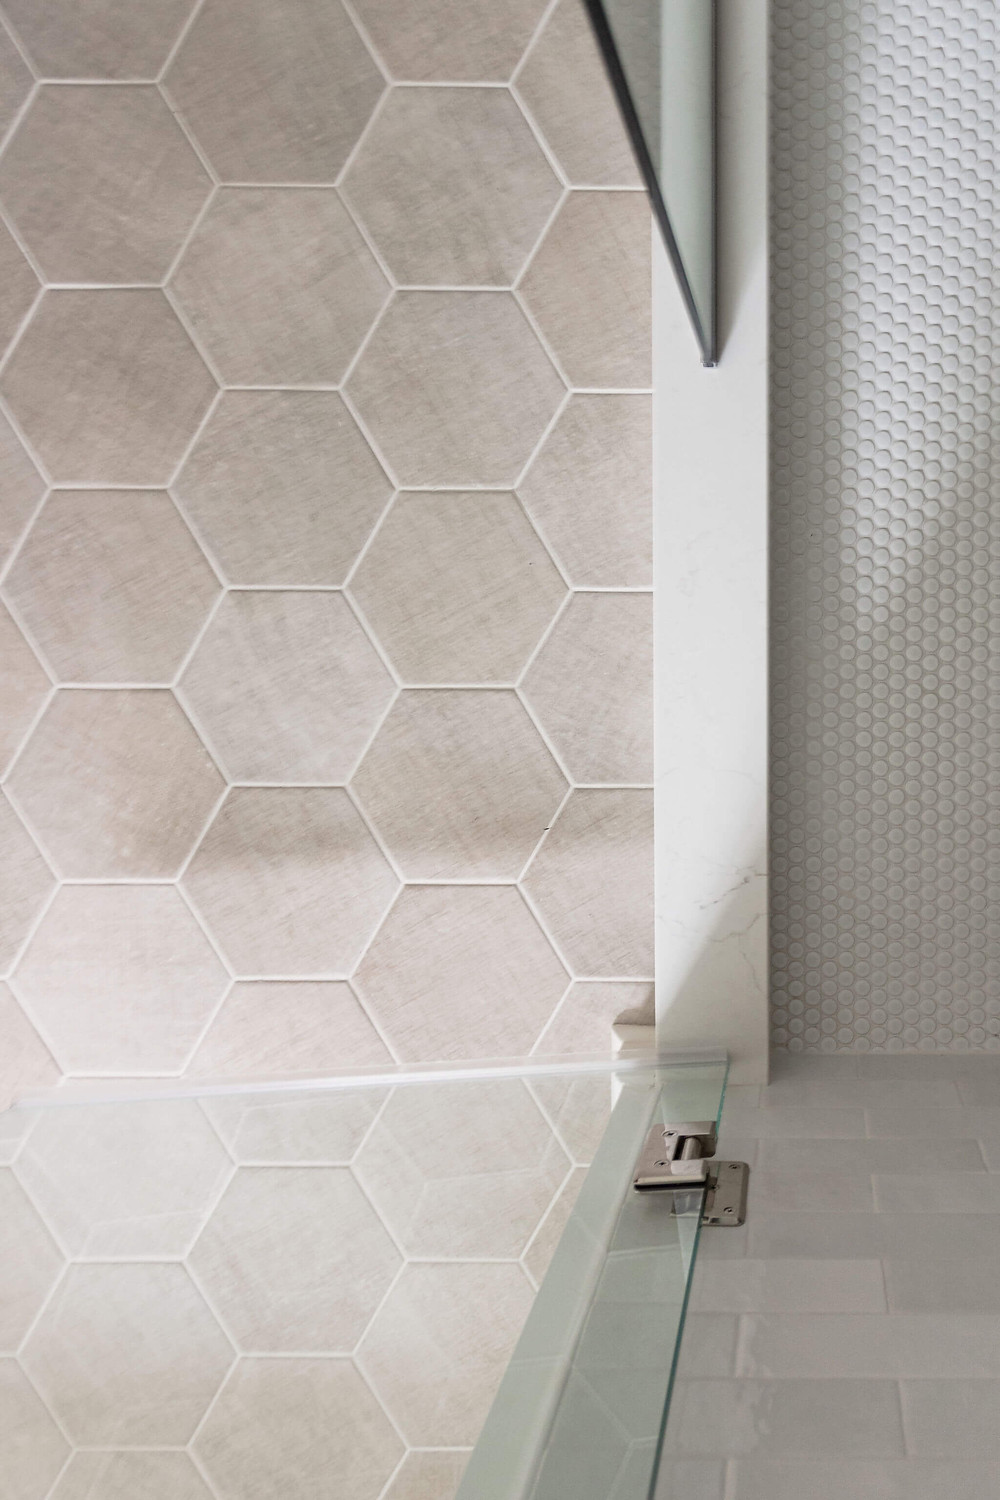 Primary owners suite tile selections on the shower and main floor including an ivory hexagon and matte white penny round tile